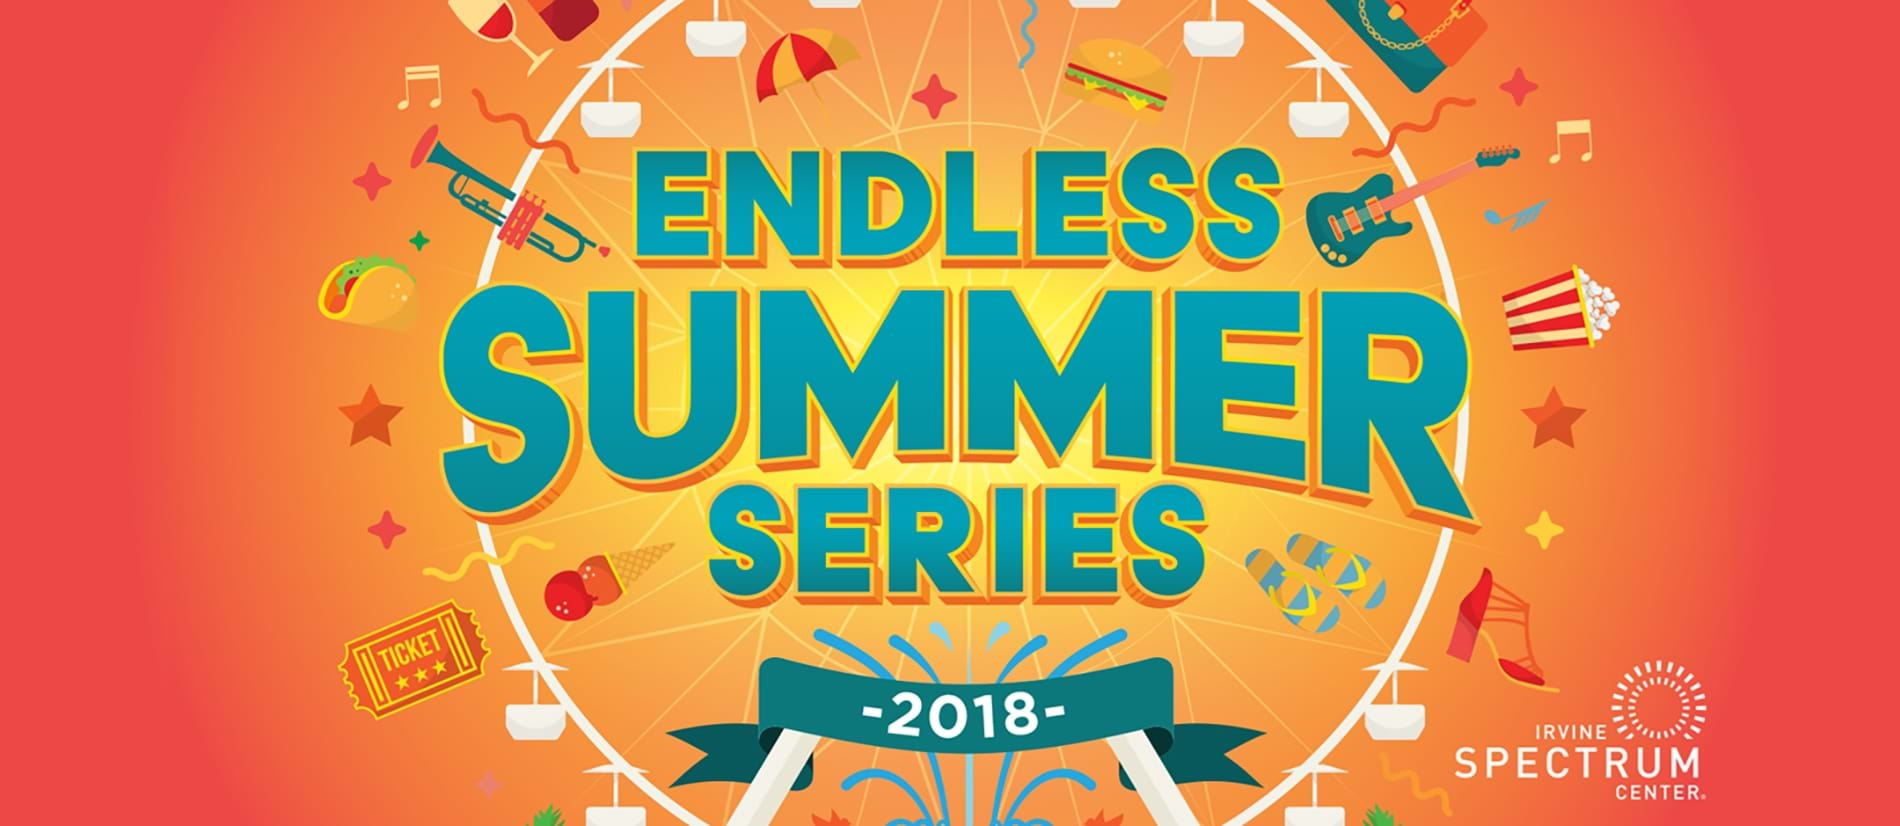 Endless Summer Series at Irvine Spectrum Center